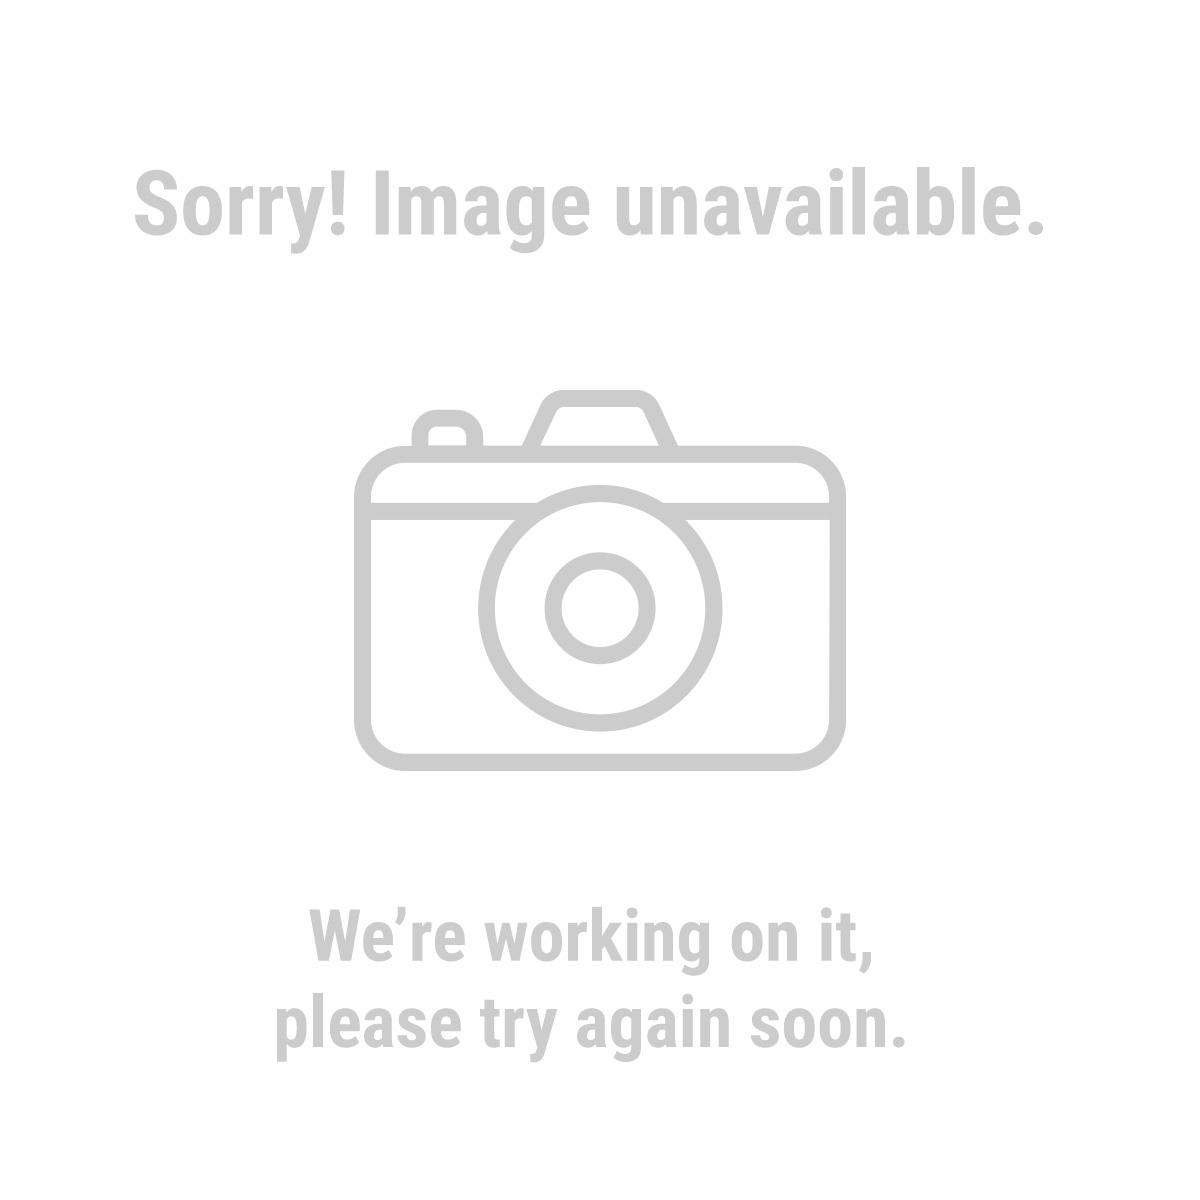 Cen-Tech 98025 7 Function Multimeter